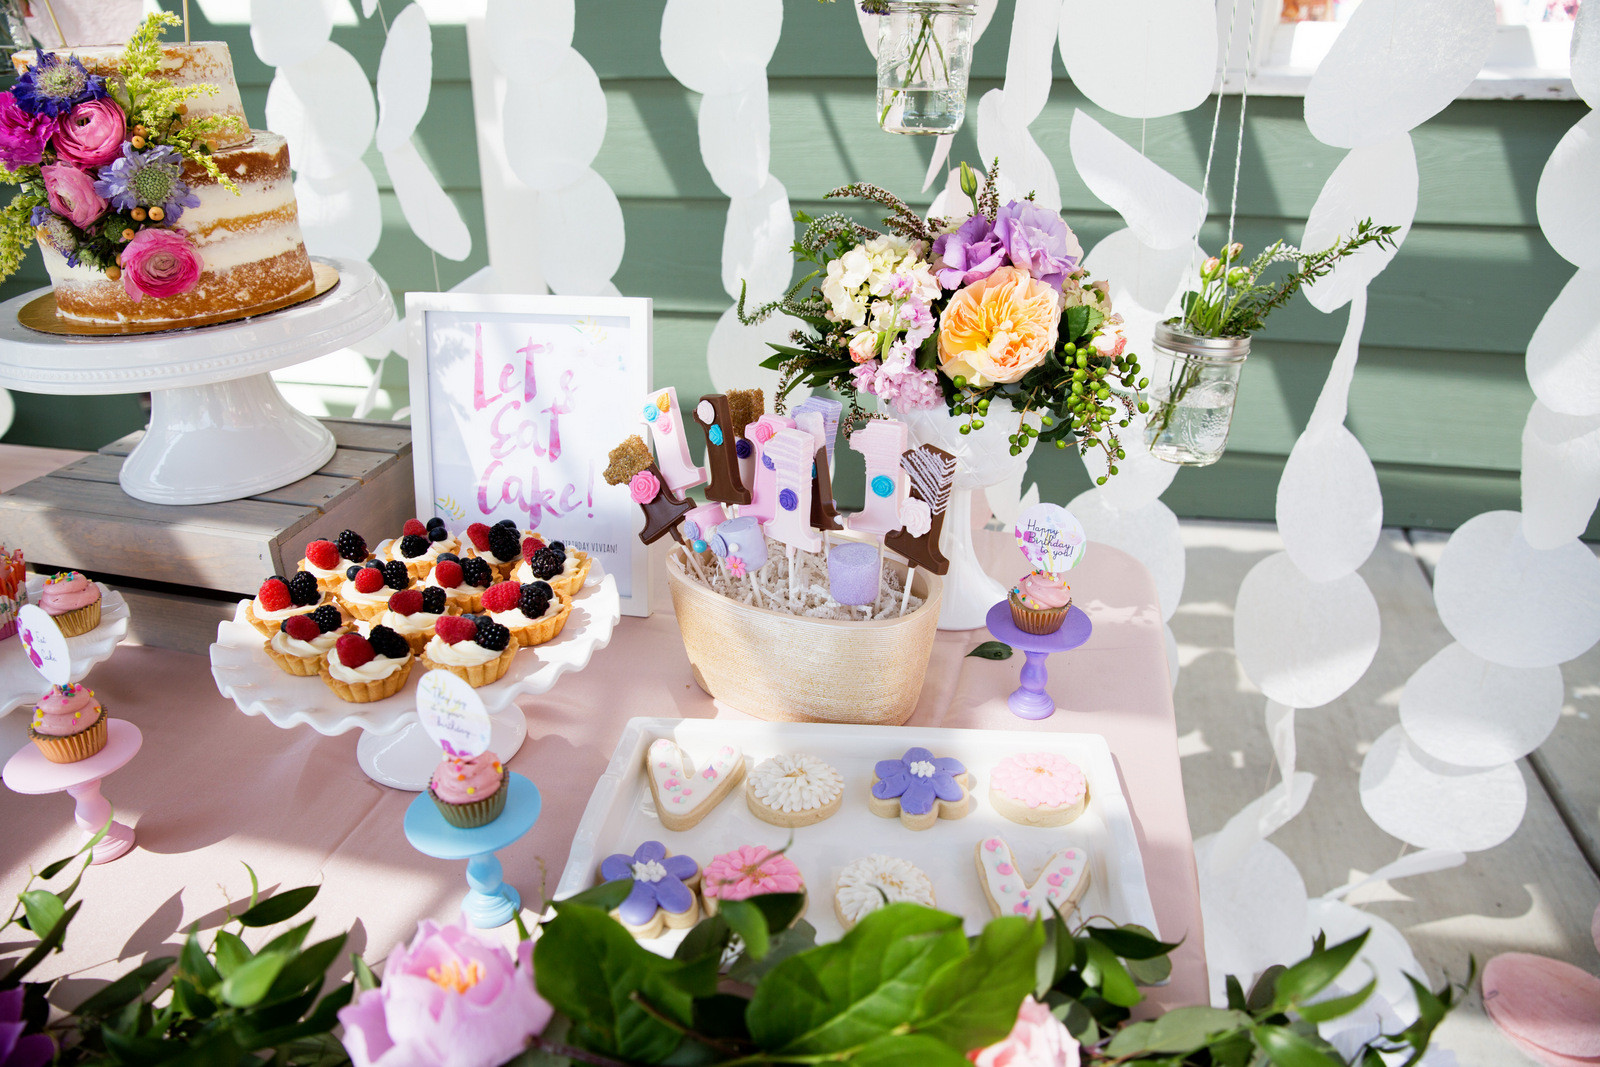 Best ideas about Garden Birthday Party . Save or Pin Vivian s Garden 1st Birthday Party Now.